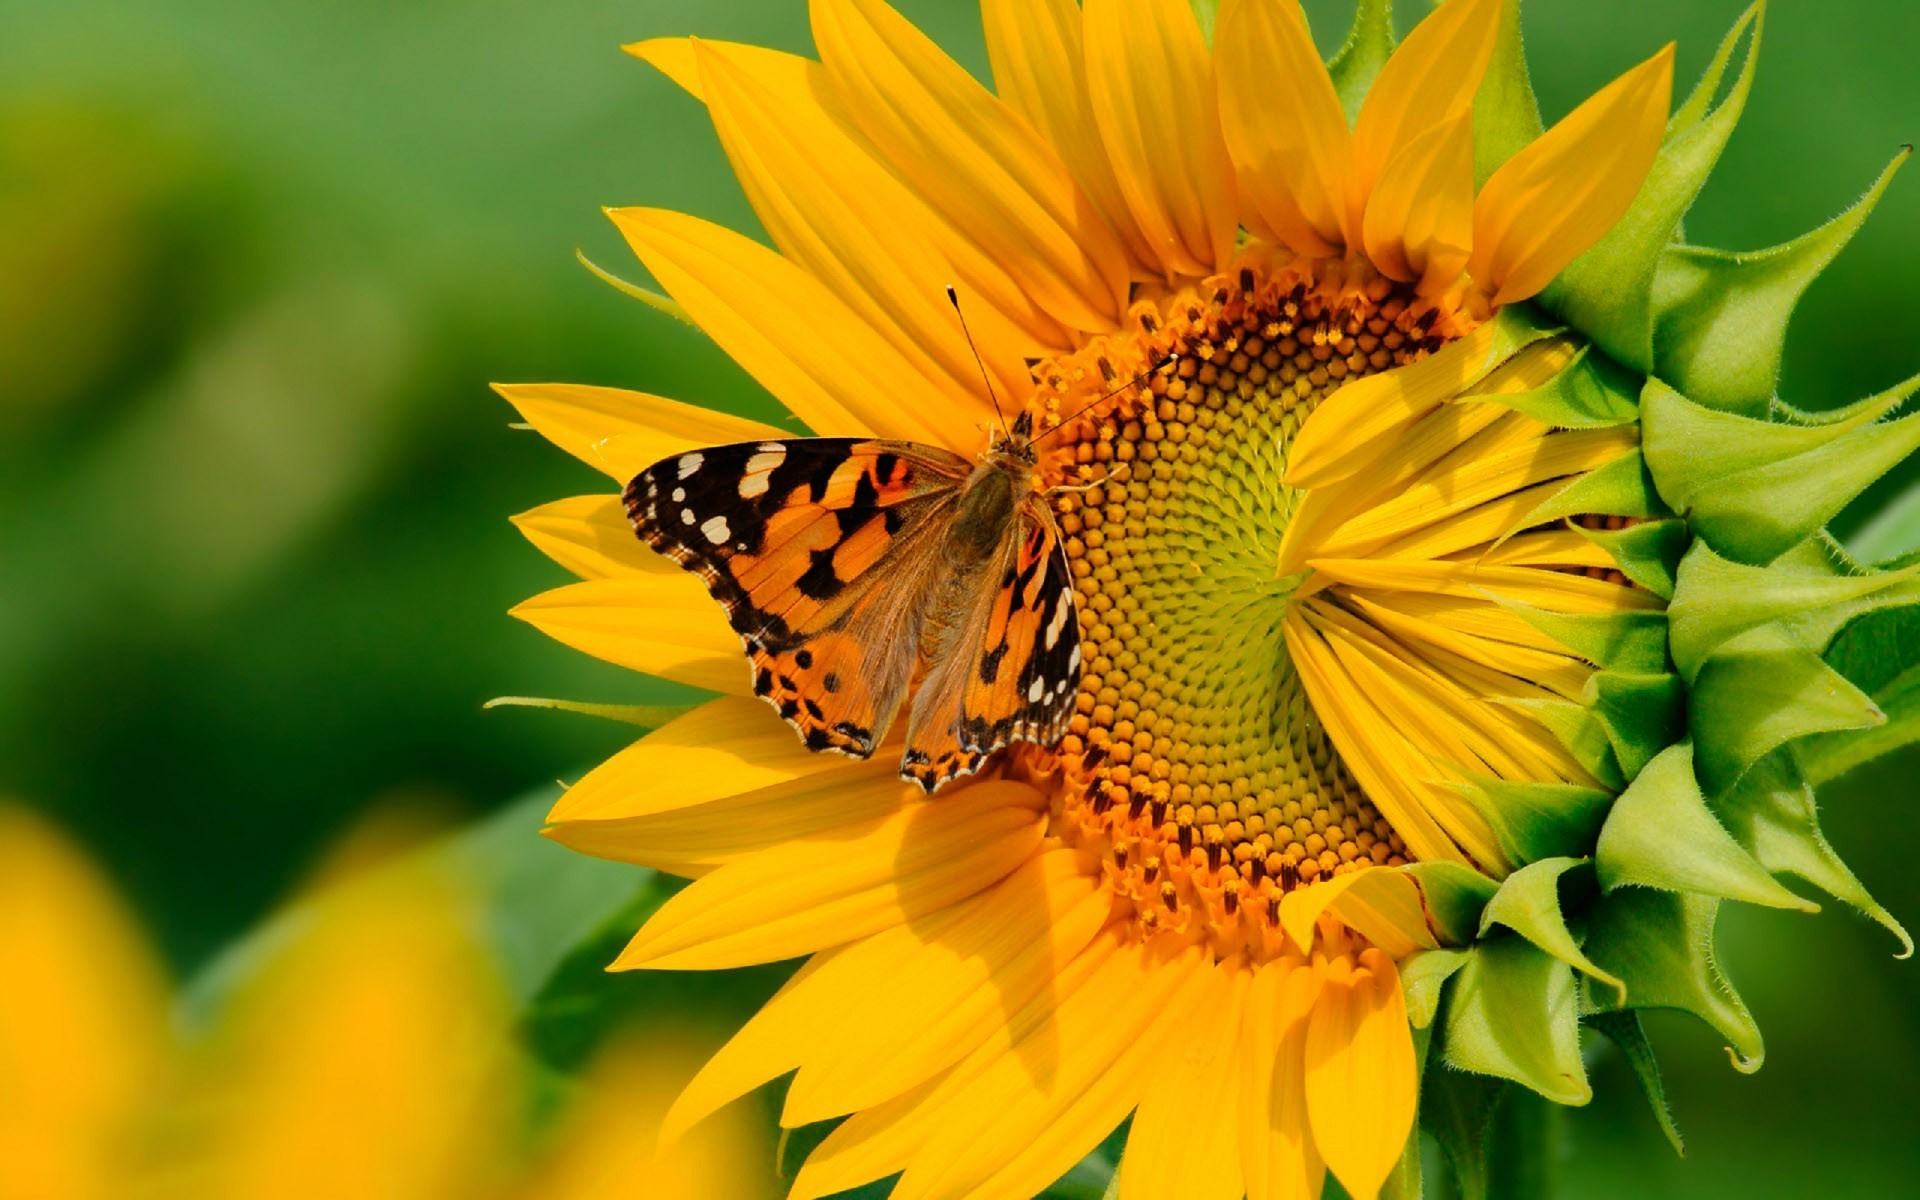 Butterfly on a sunflower